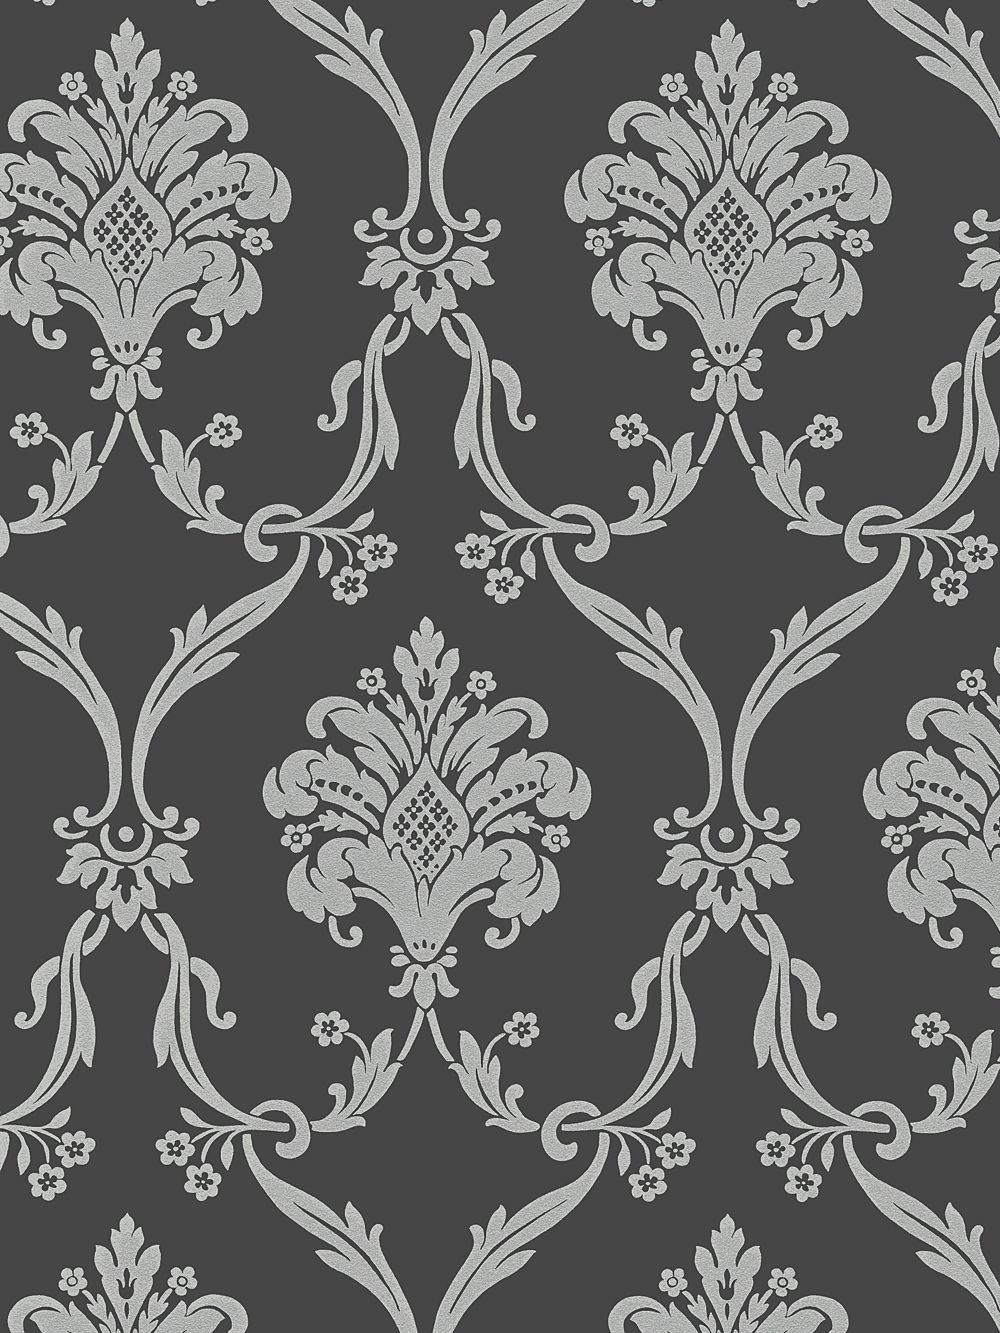 Silver on Dark Gray Victorian Damask Wallpaper Random